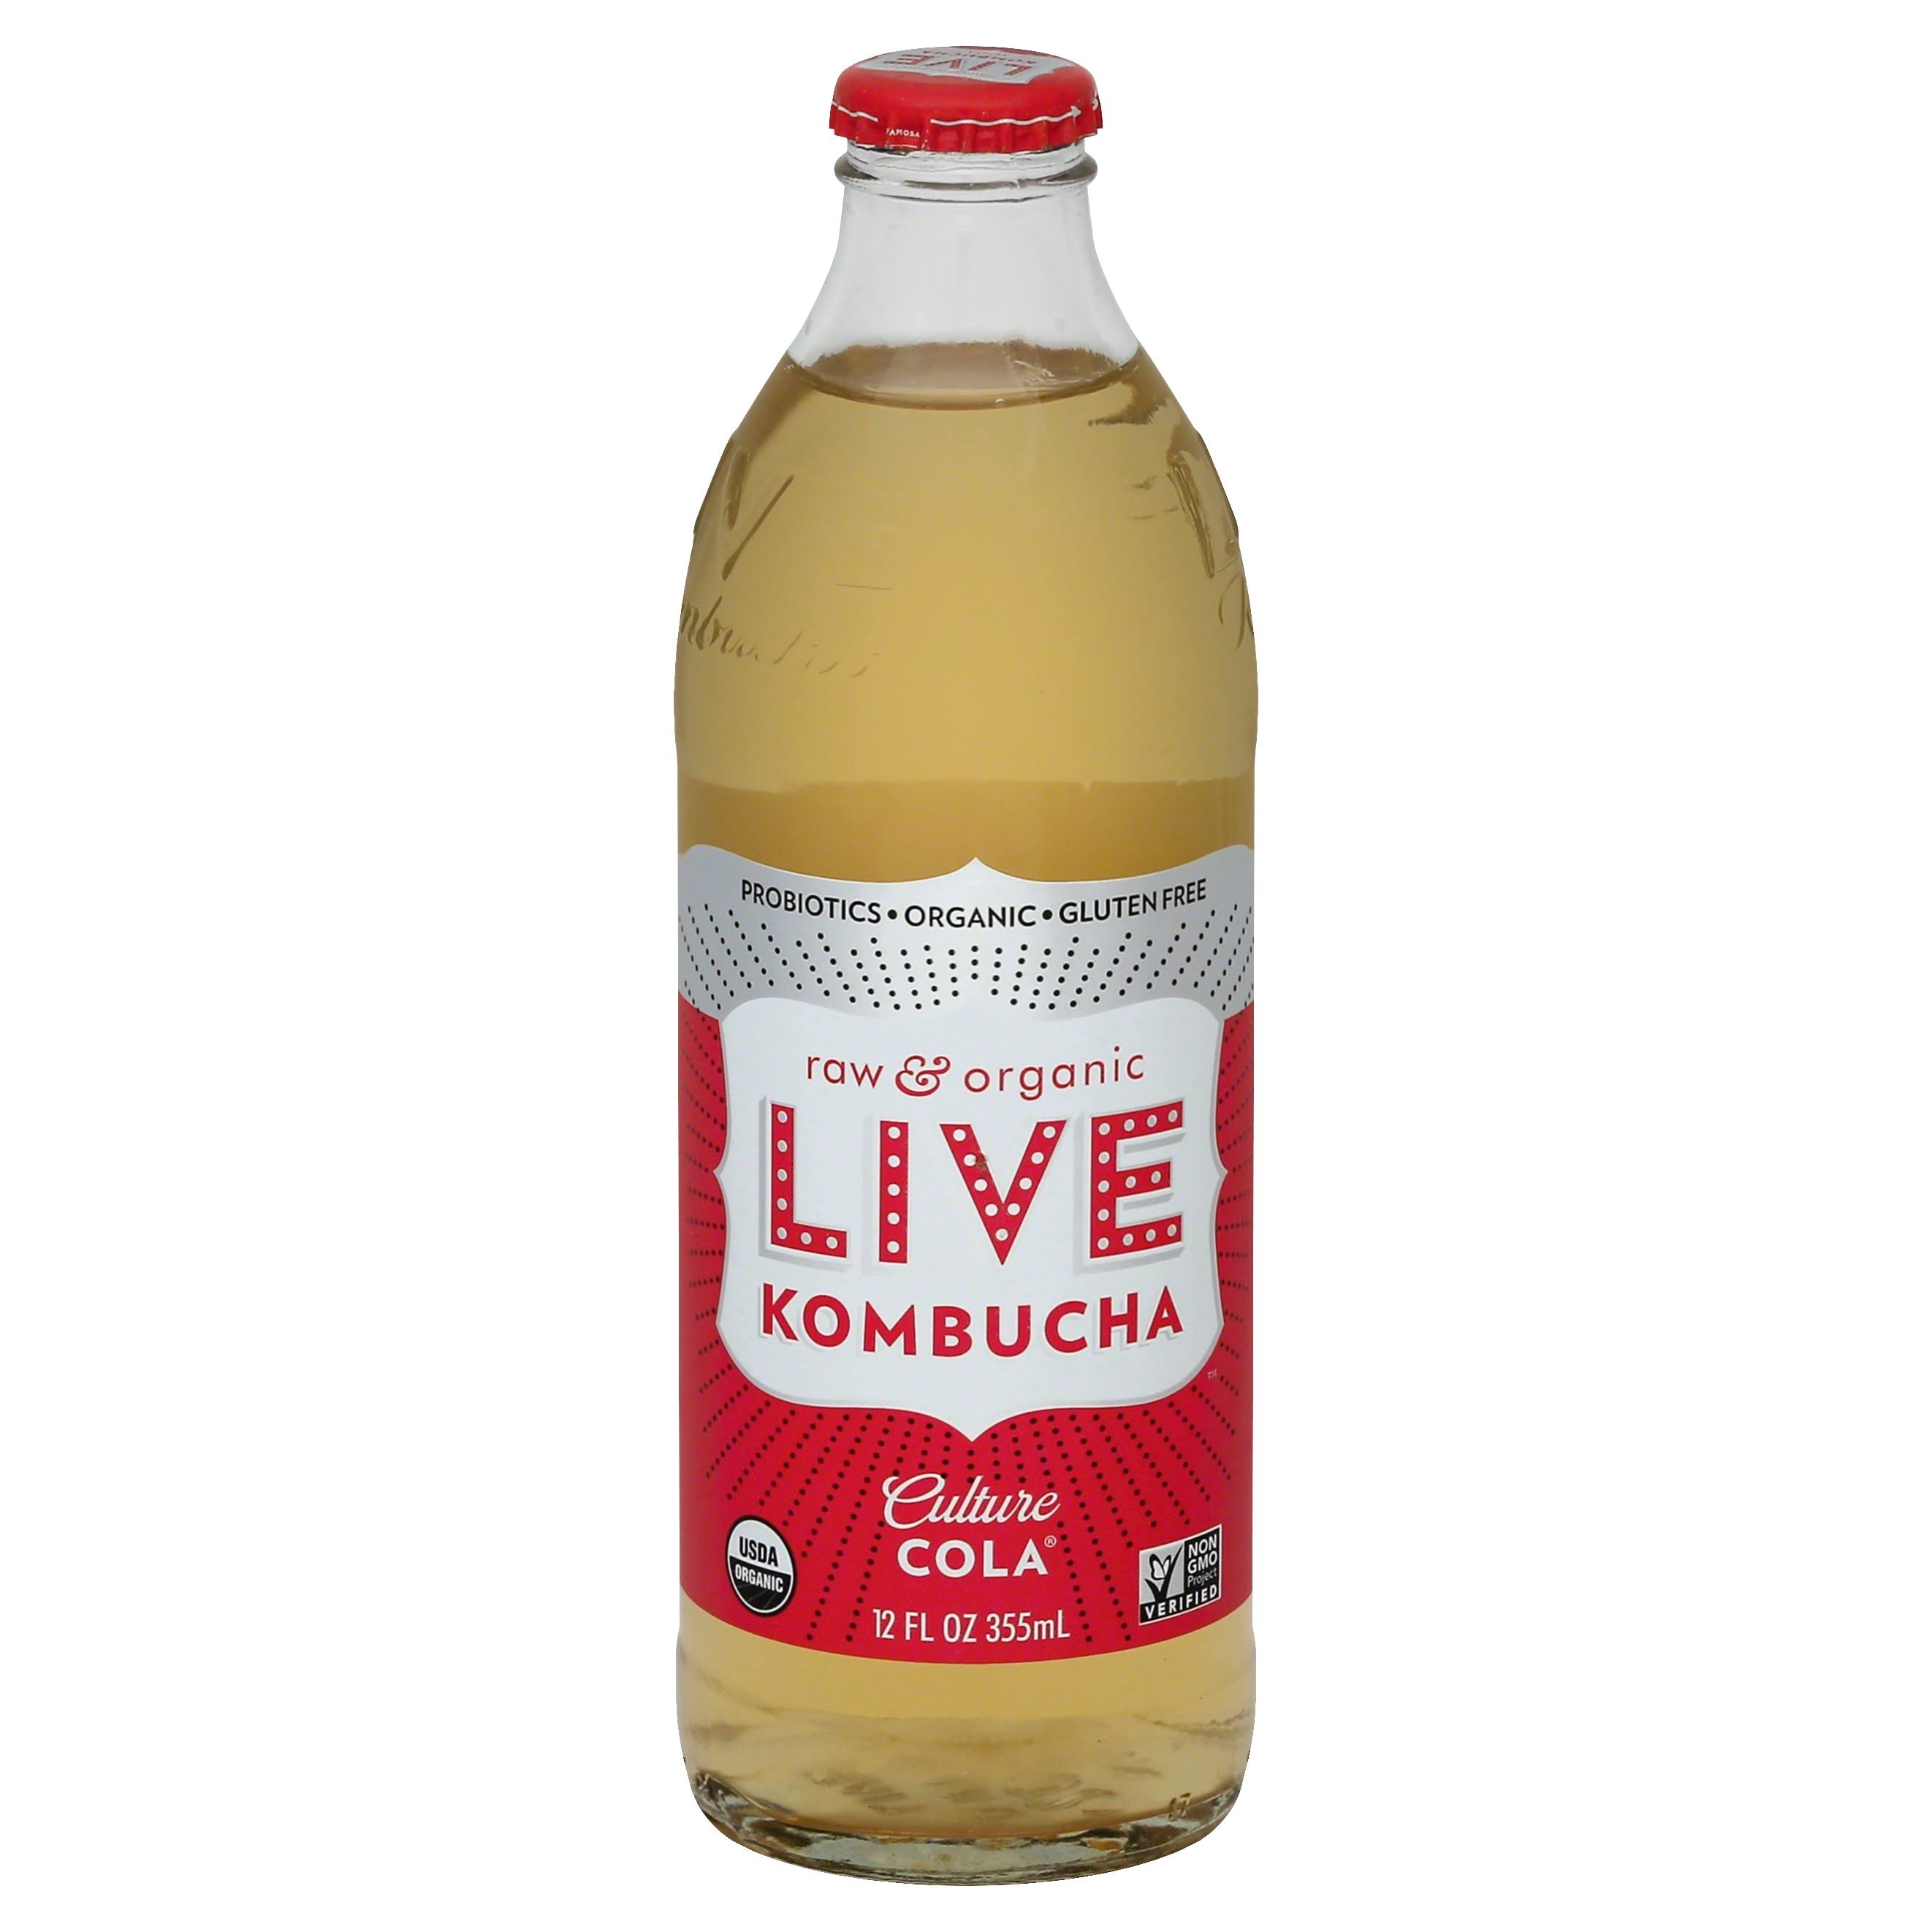 Live Soda Culture Cola Kombucha - 12 fl oz bottle